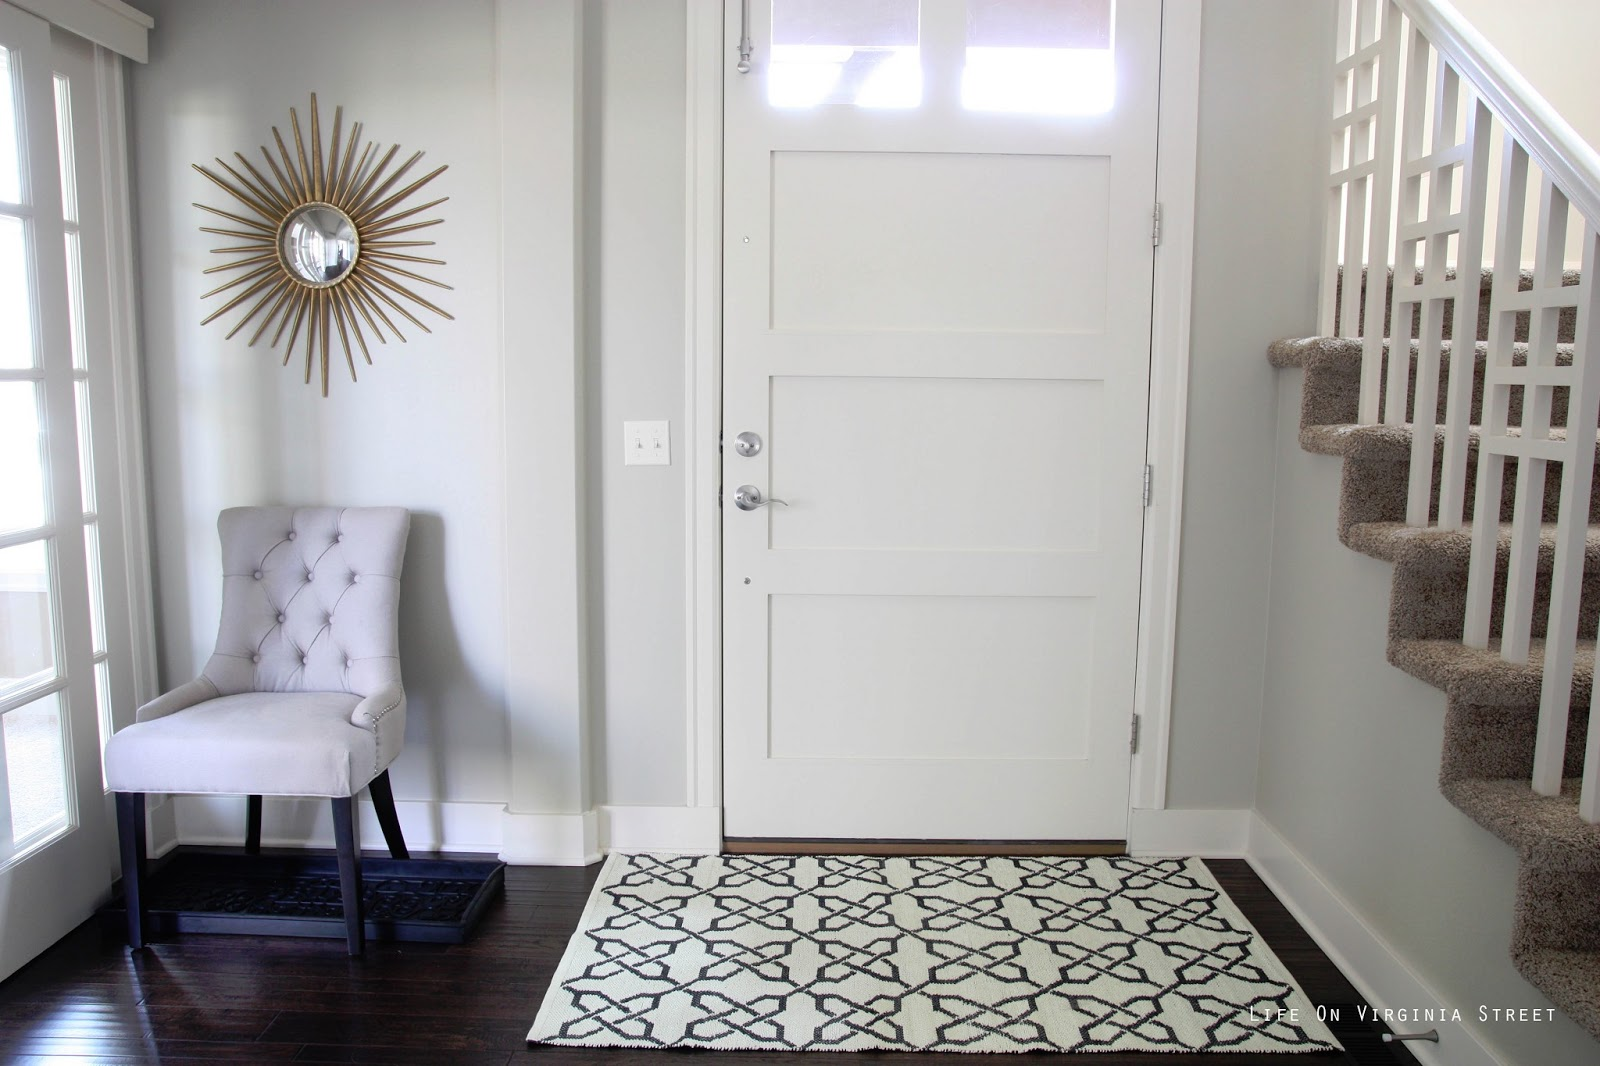 A Sunnier Entryway | Life On Virginia Street